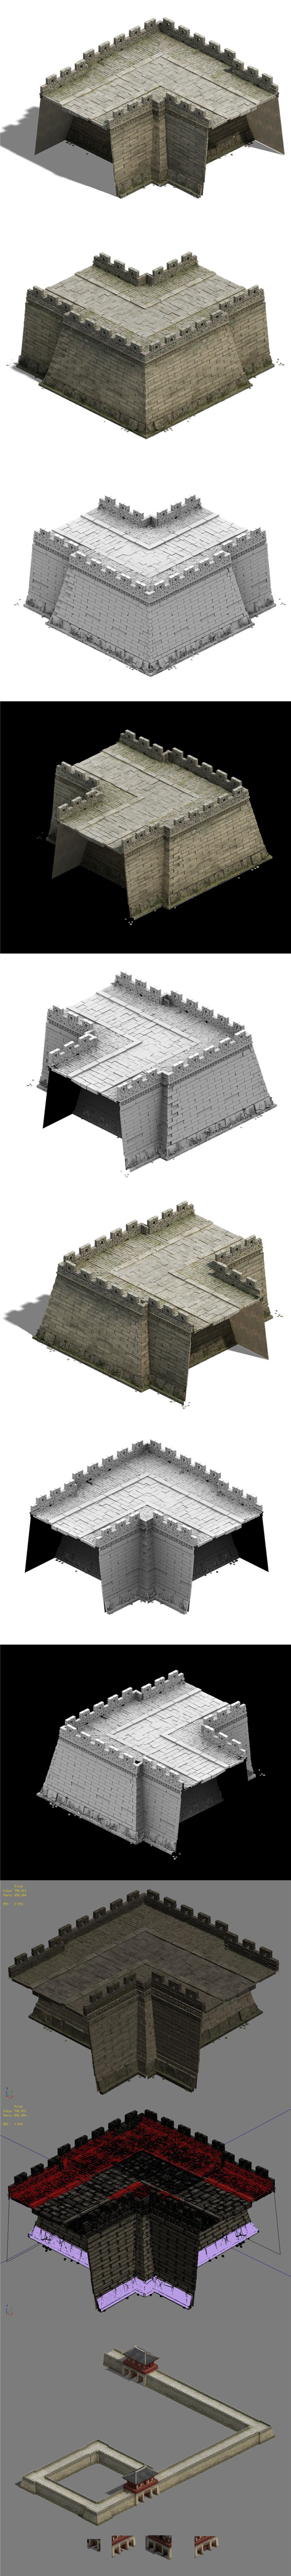 City Gate - City Wall - City Corner 02 - 3DOcean Item for Sale